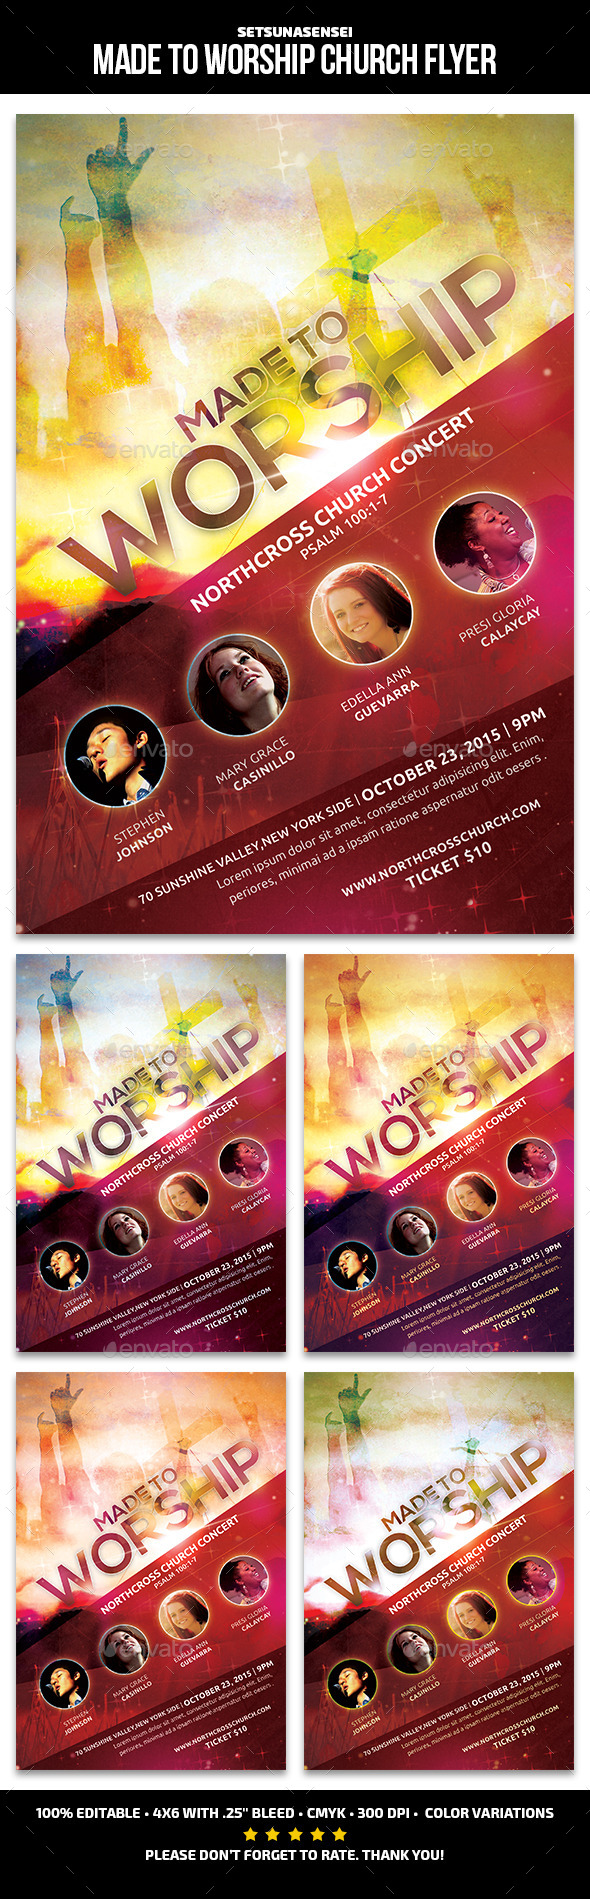 Made to Worship Church Flyer - Church Flyers